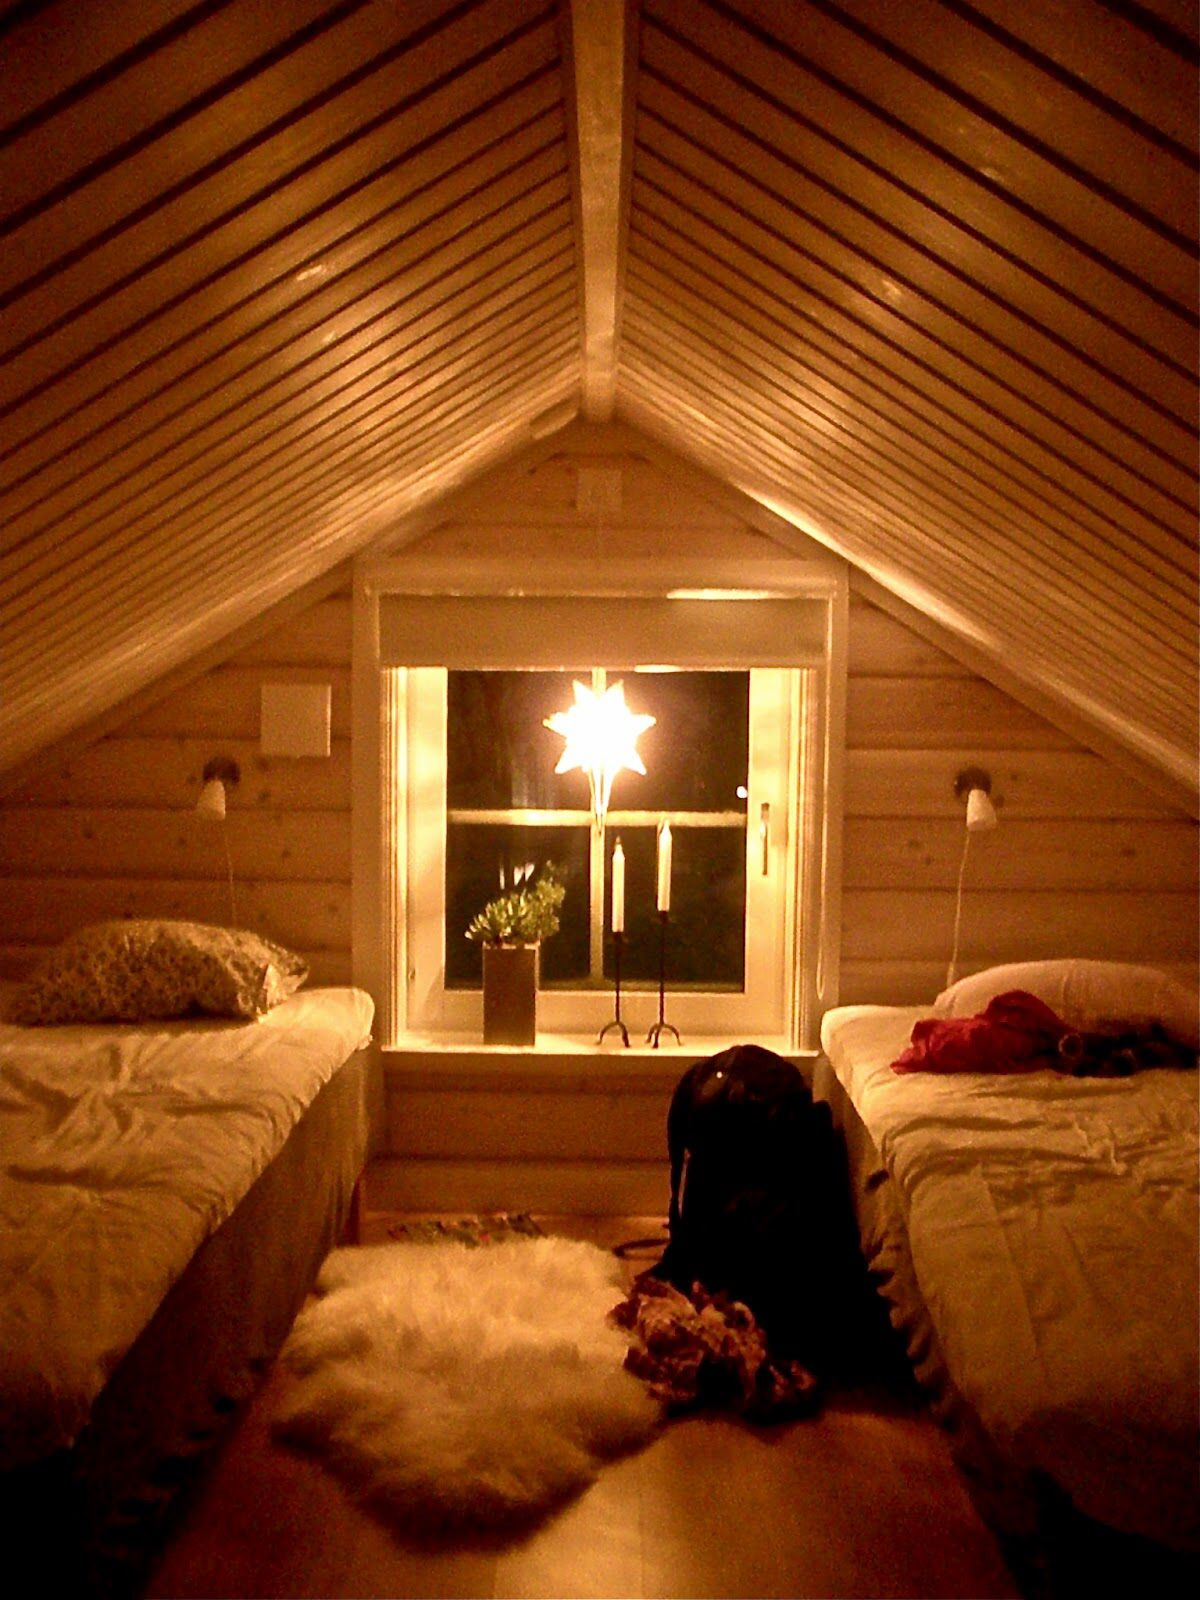 modern country style by cassidy dekuiper on ideas cozy on modern cozy bedroom decorating ideas id=36294